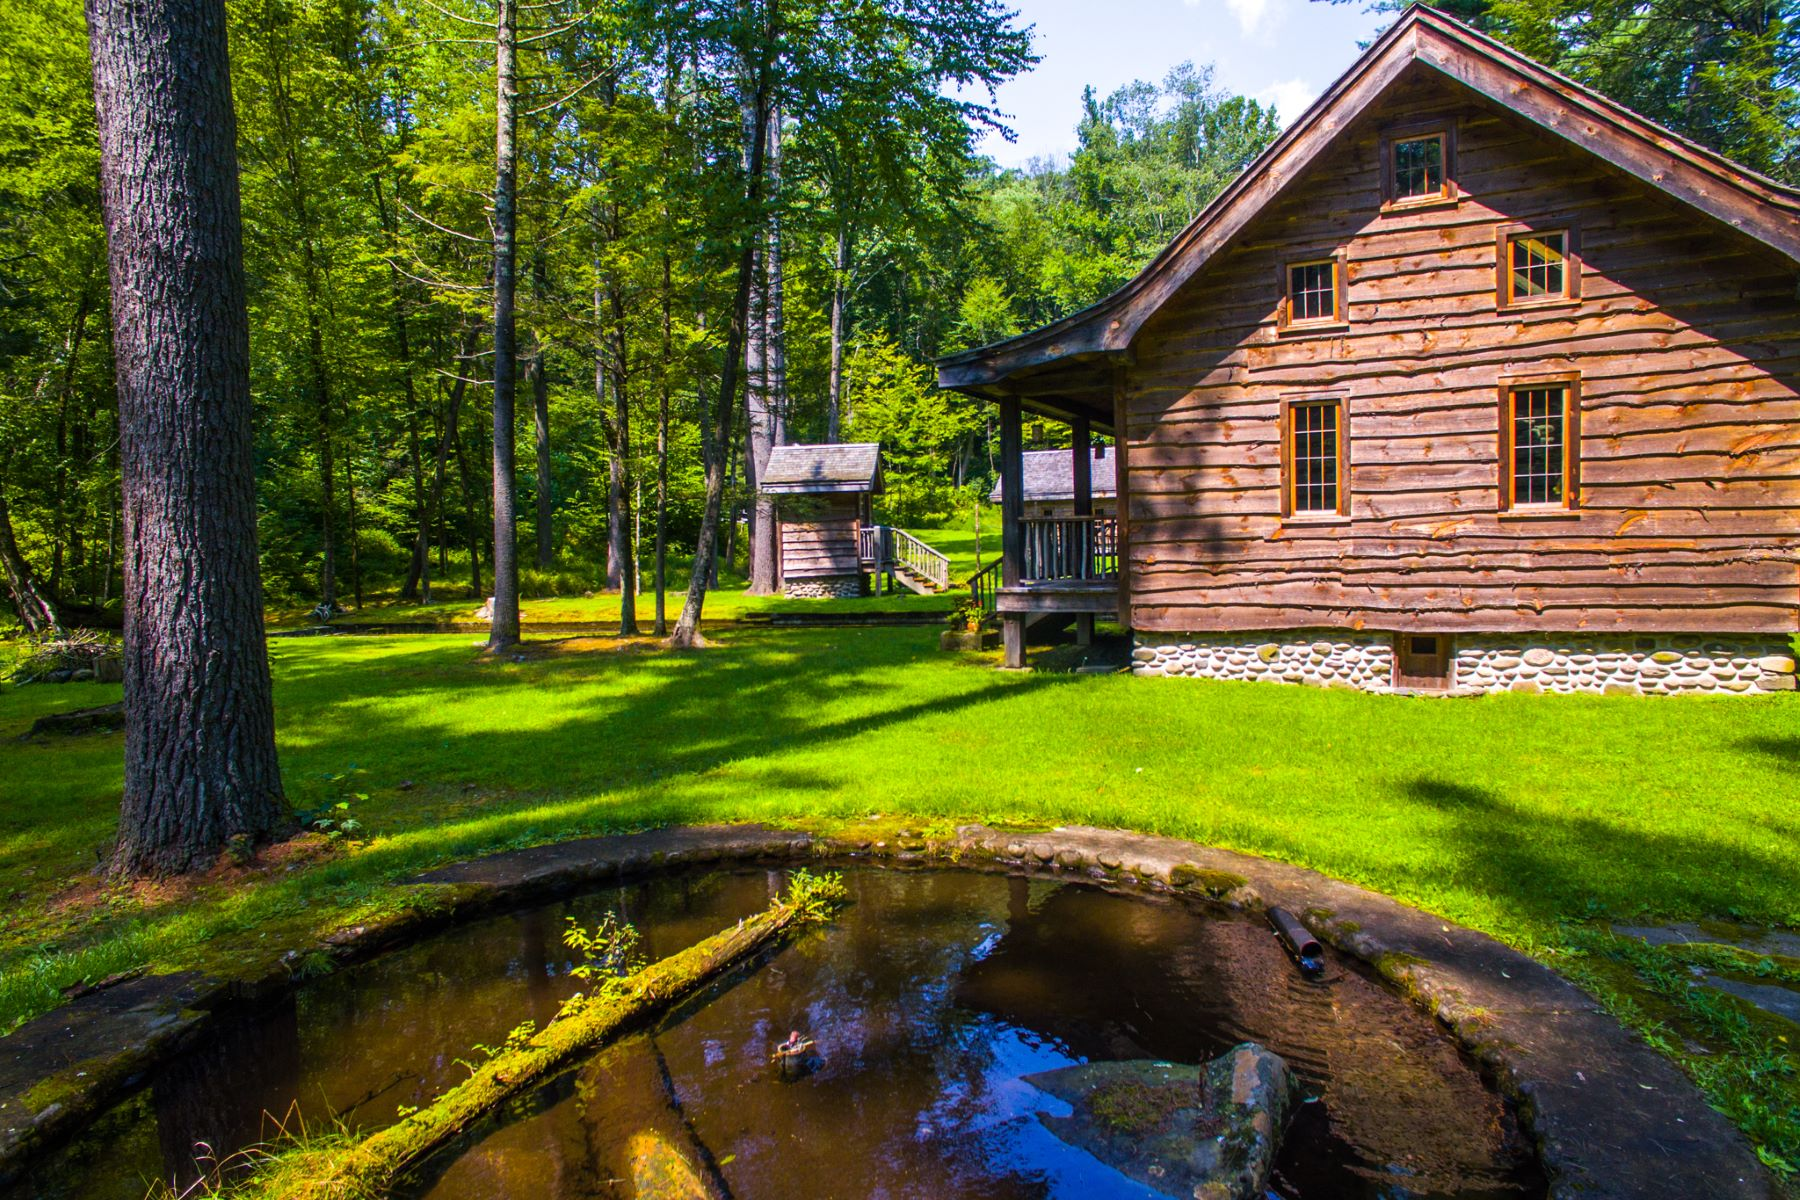 Single Family Homes for Active at Trout Hatchery Ponds on the Vernooy Kill Catskills 189 Lundy Rd Road Napanoch, New York 12489 United States